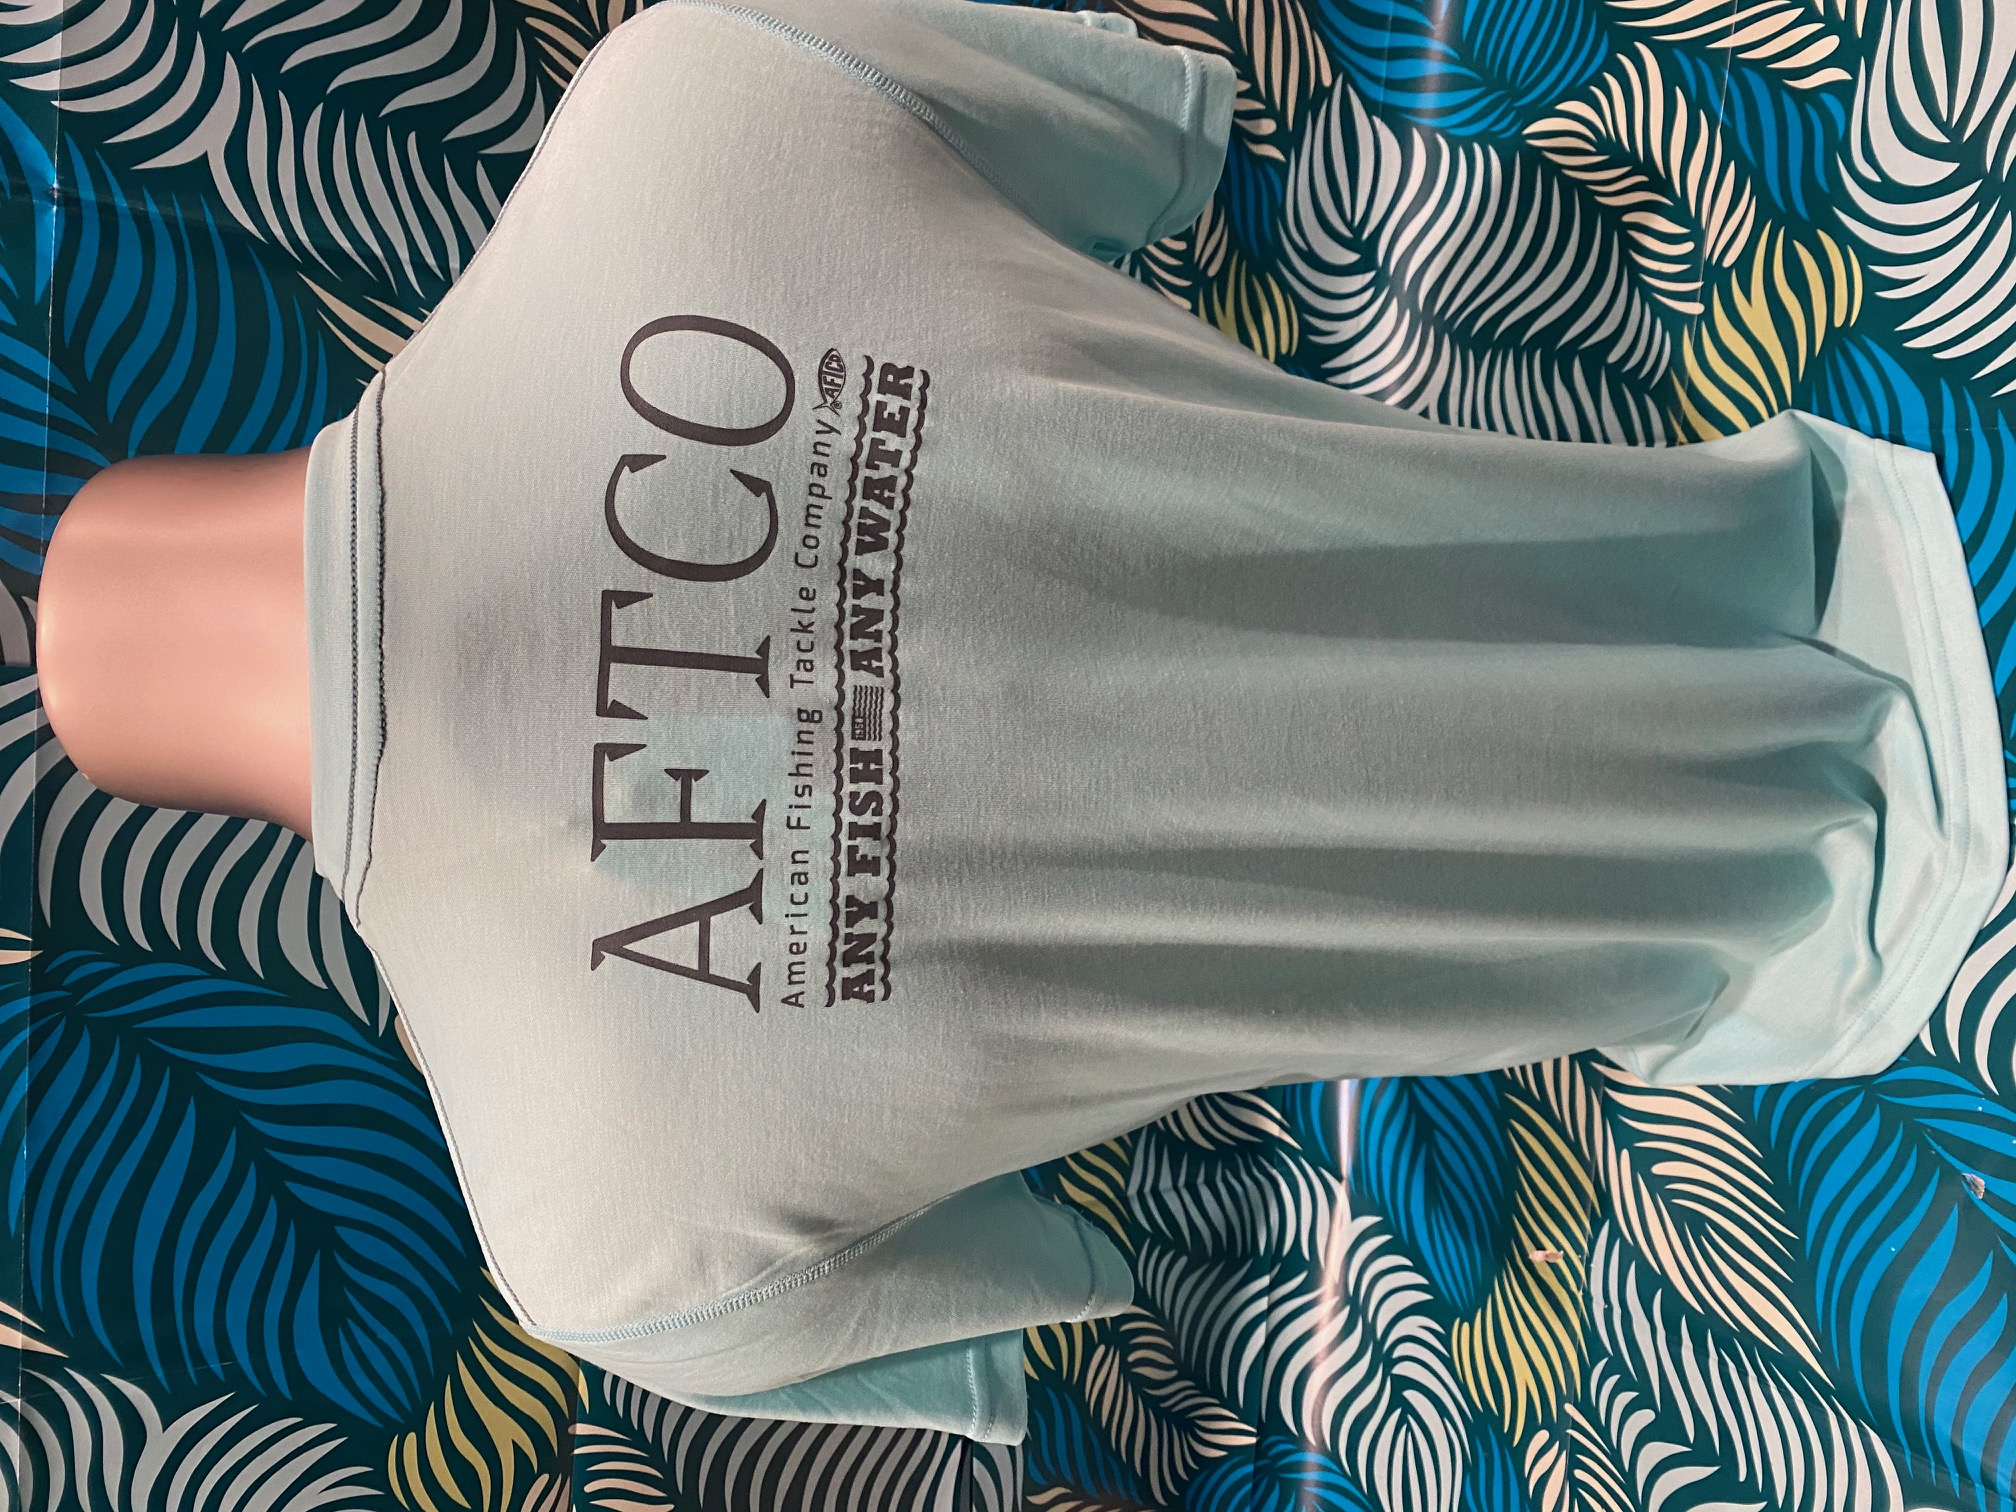 Aftco Anytime DriRelease SS Shirt